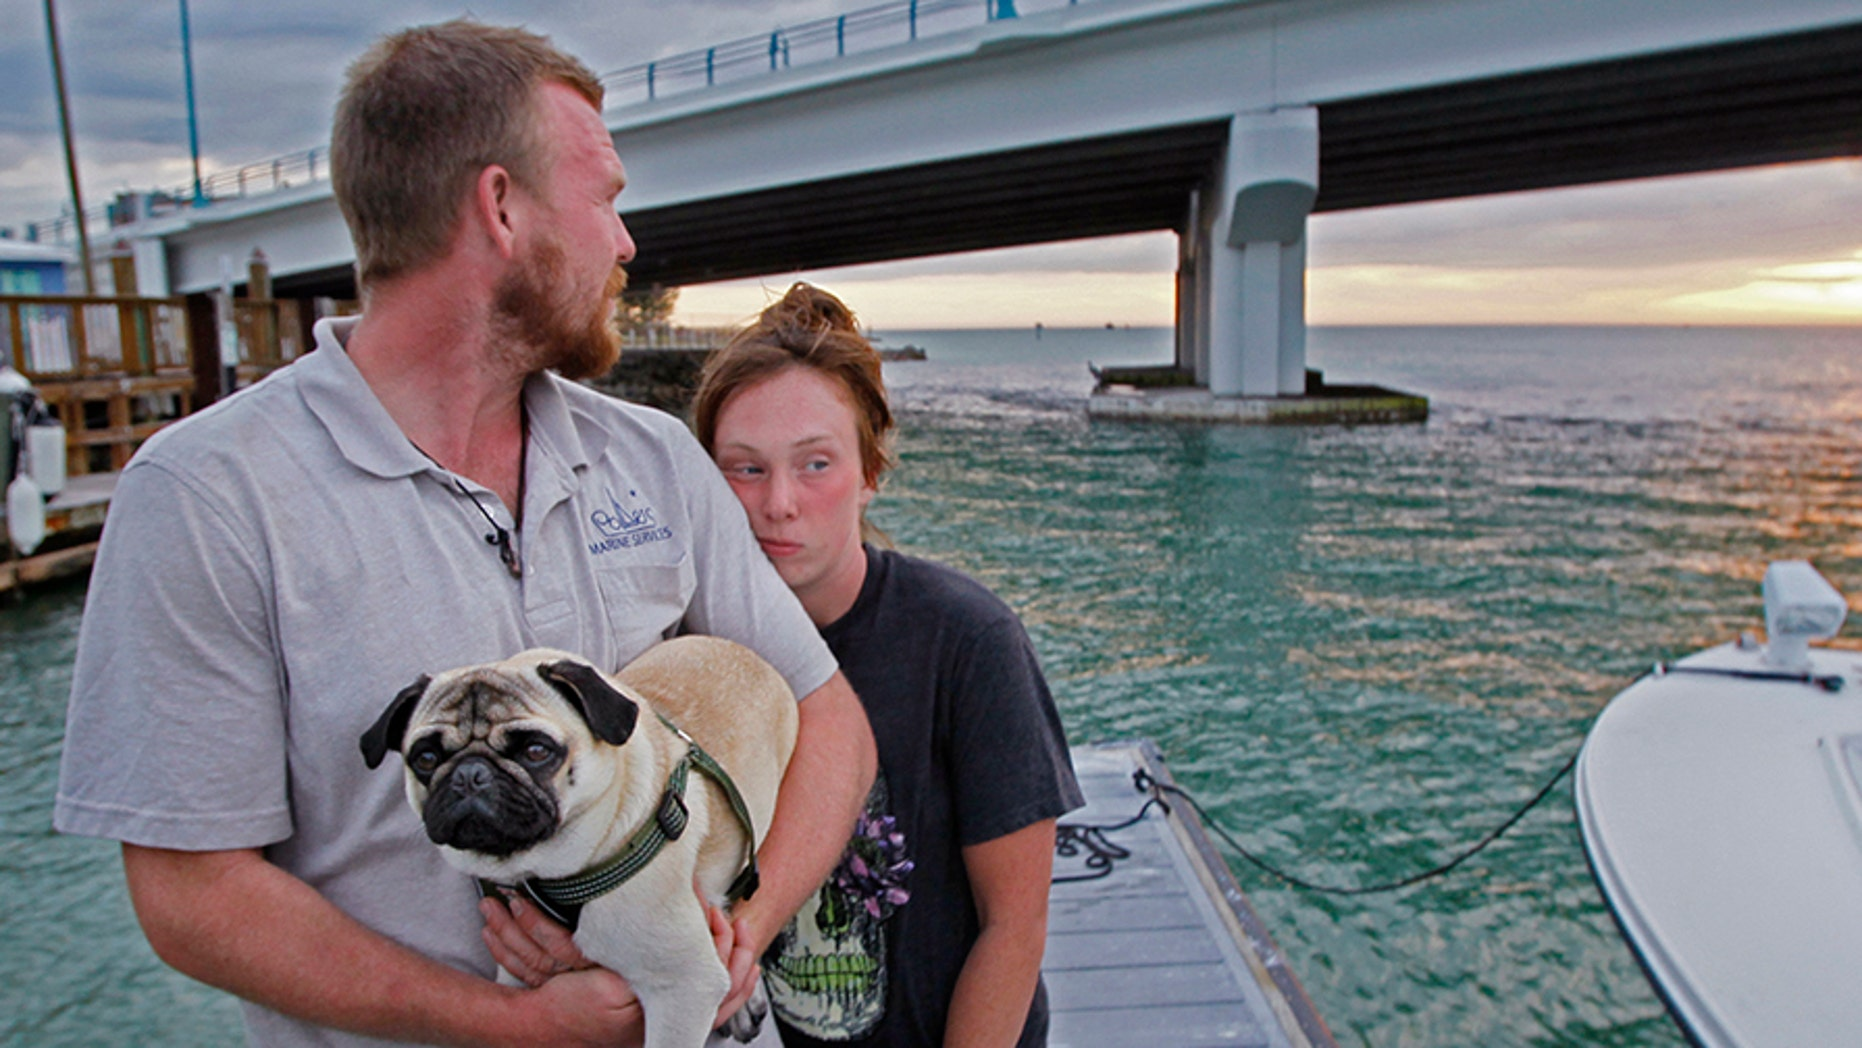 A Colorado couple who dreamed of a life sailing around the world had the wind taken out of their sails when their boat capsized nearly two days into their trip.